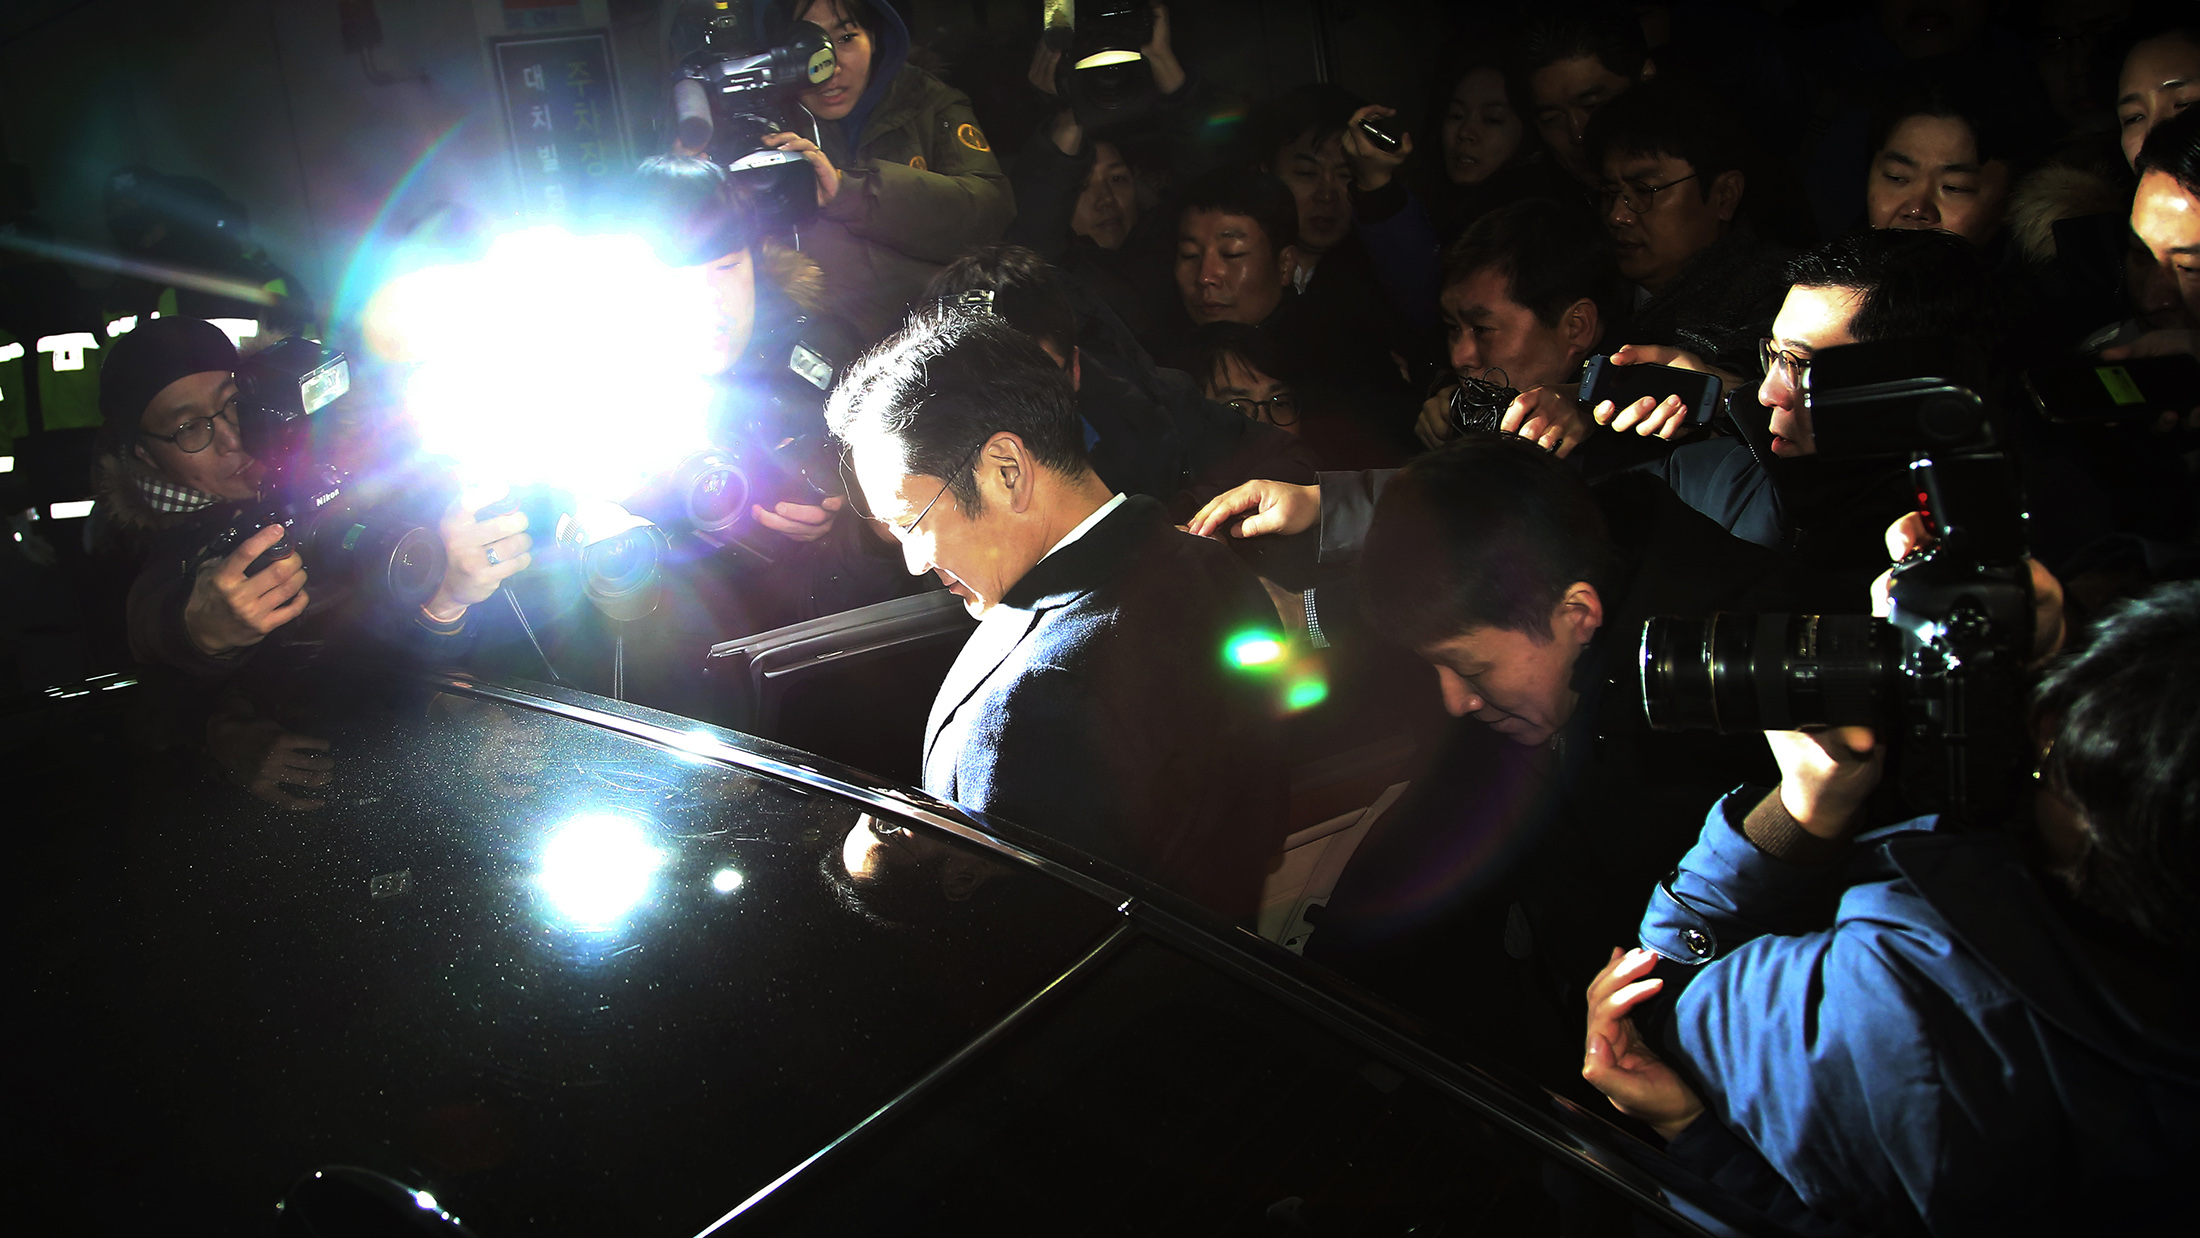 Samsung Succession in Disarray as Lee Criminal Case Advances